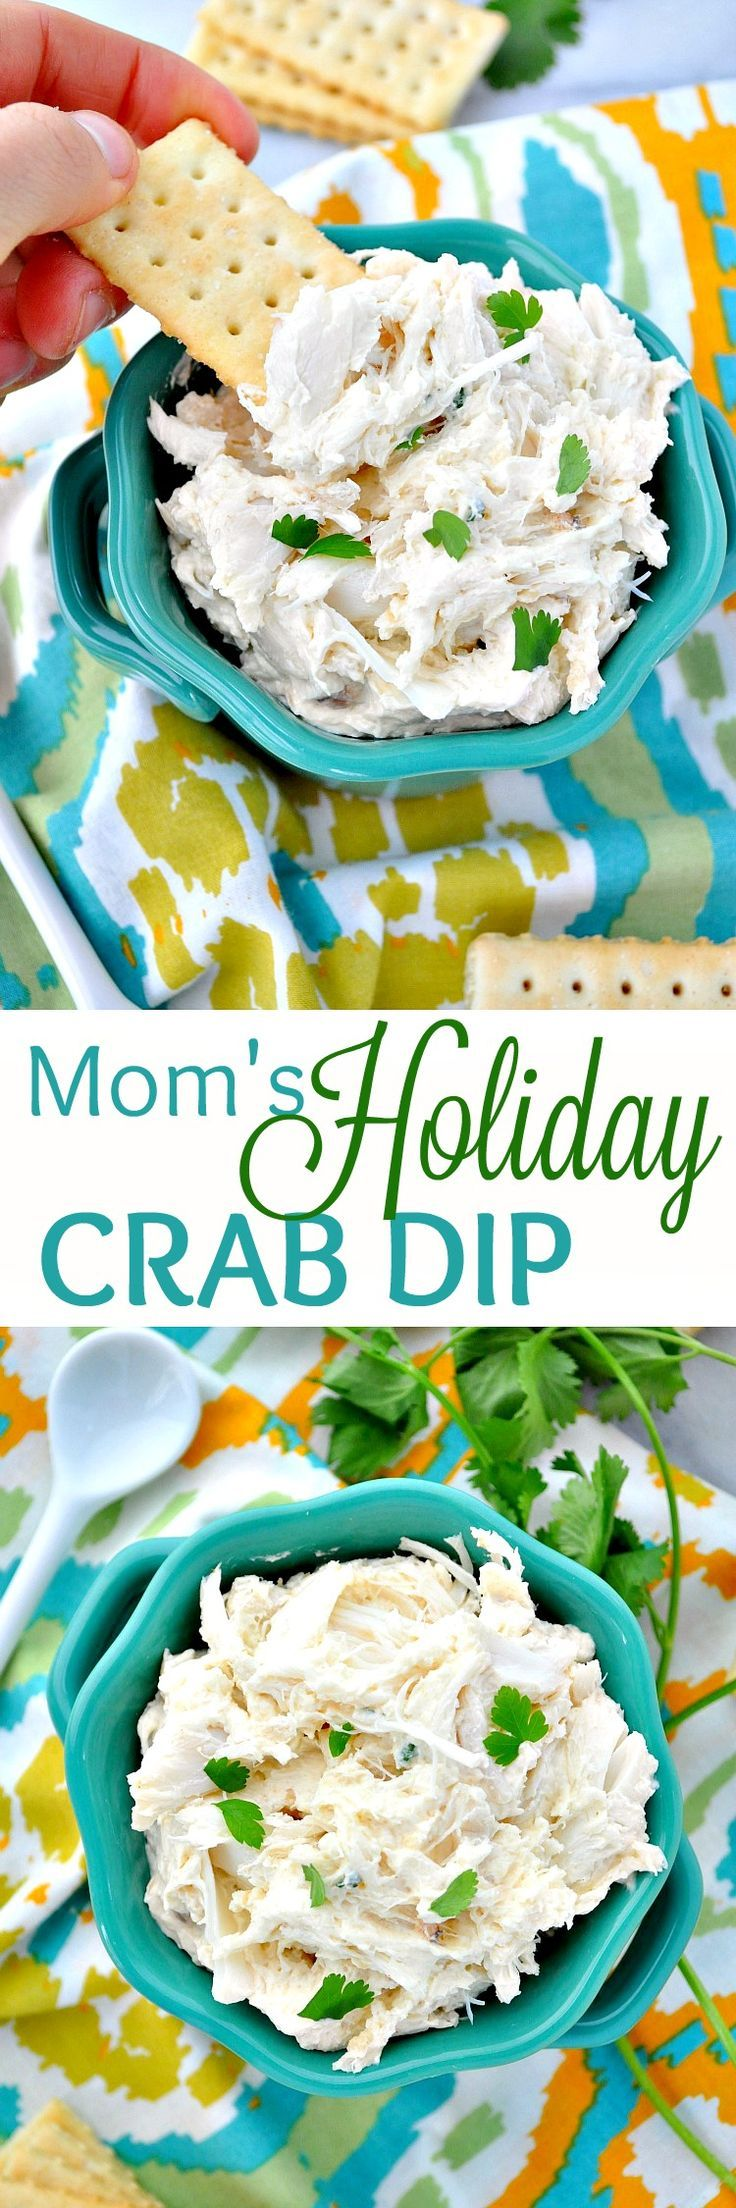 Simple is always best — especially when you're hosting a party! My MOM'S HOLIDAY CRAB DIP is an all-time favorite appetizer and it's ready in 10 minutes!